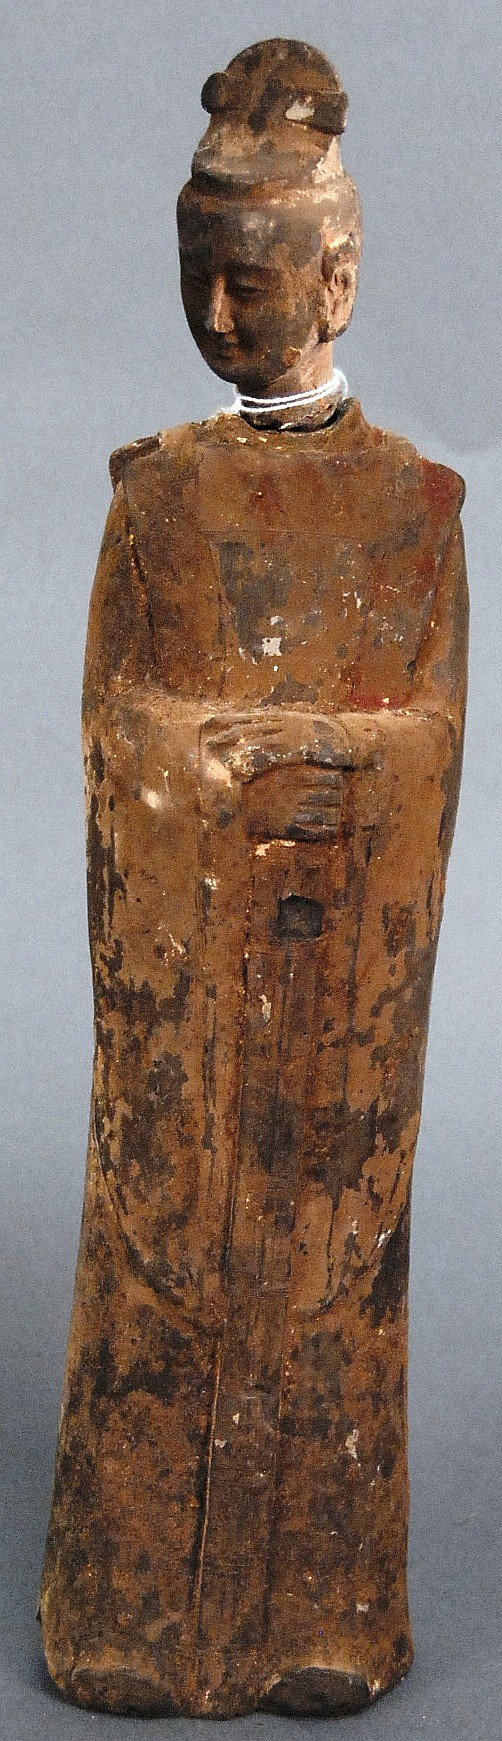 Chinese pottery tomb figure of an official, the standing figure made of grey clay with remnants of red and white colors on a long ro...